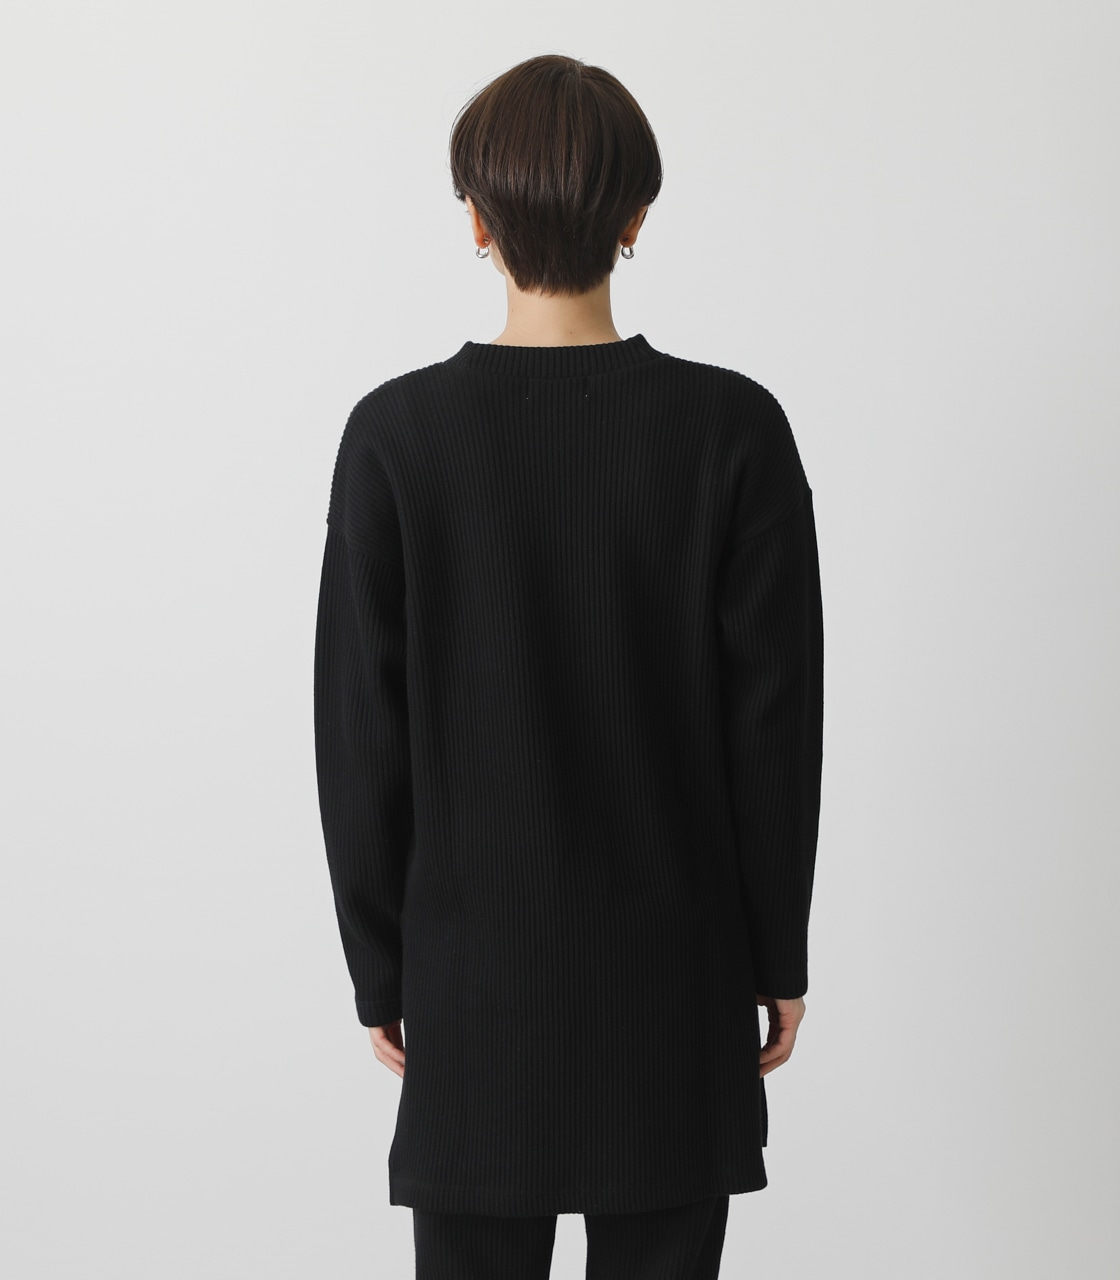 T/H SIDE SLIT LONG TOPS/T/Hサイドスリットロングトップス 詳細画像 BLK 7